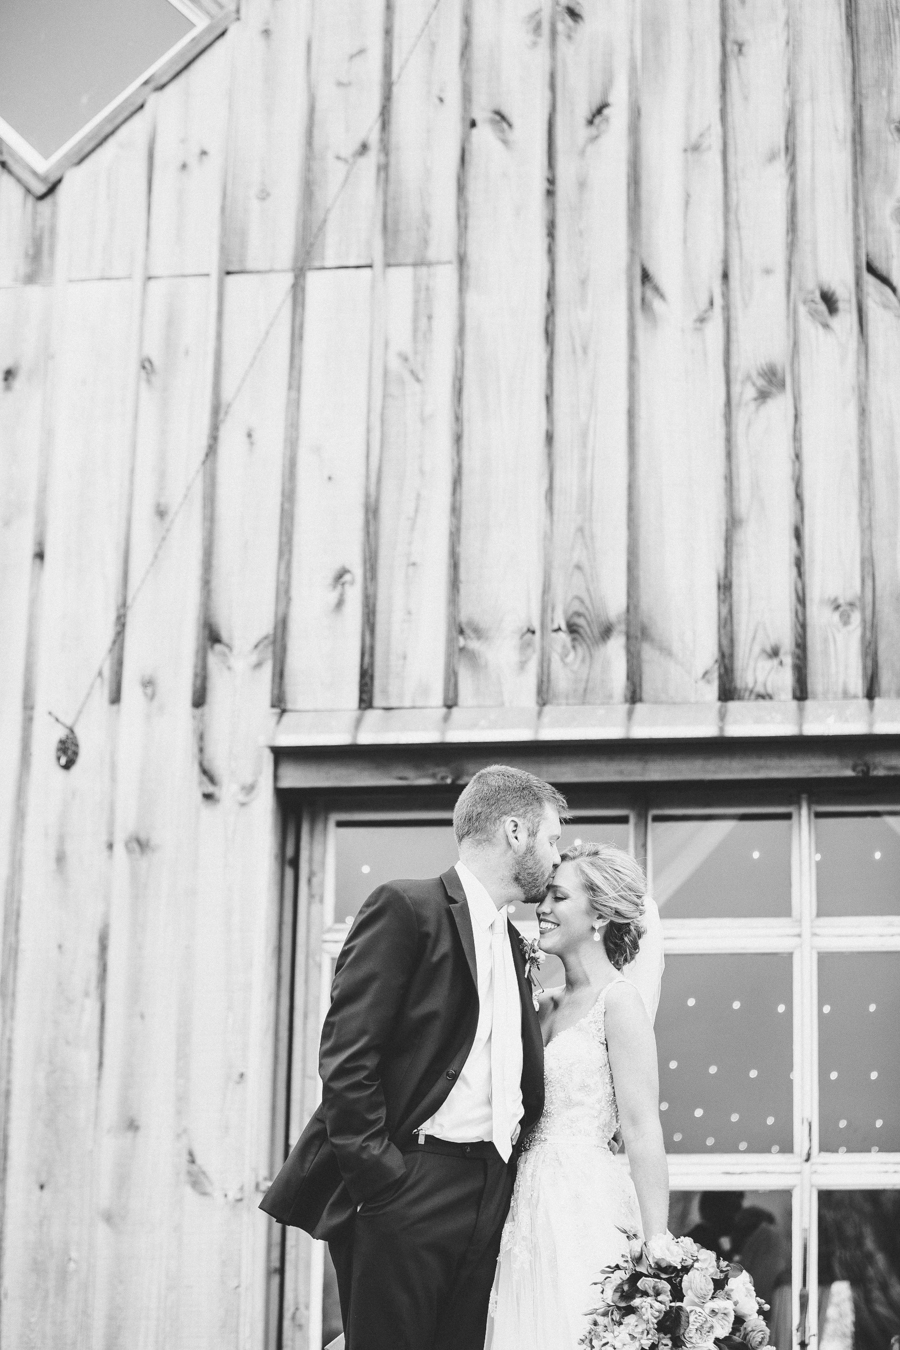 Abbey-And-Ryan-Sneak-Preview-Heirloom-Photo-Company-1-5.jpg